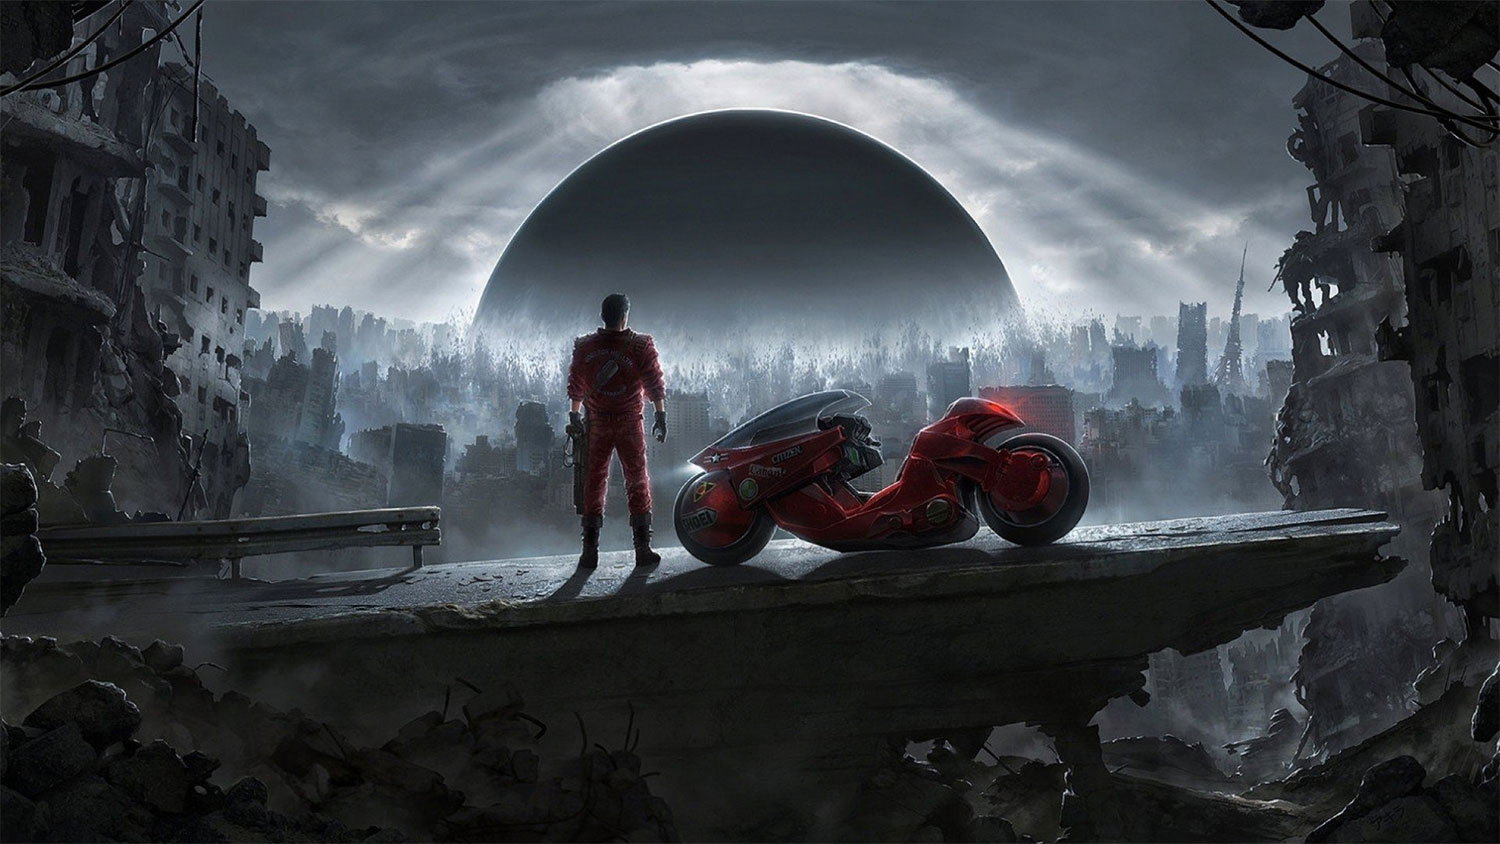 Moody art of Akira and motorcycle at night, overlooking a city skyline